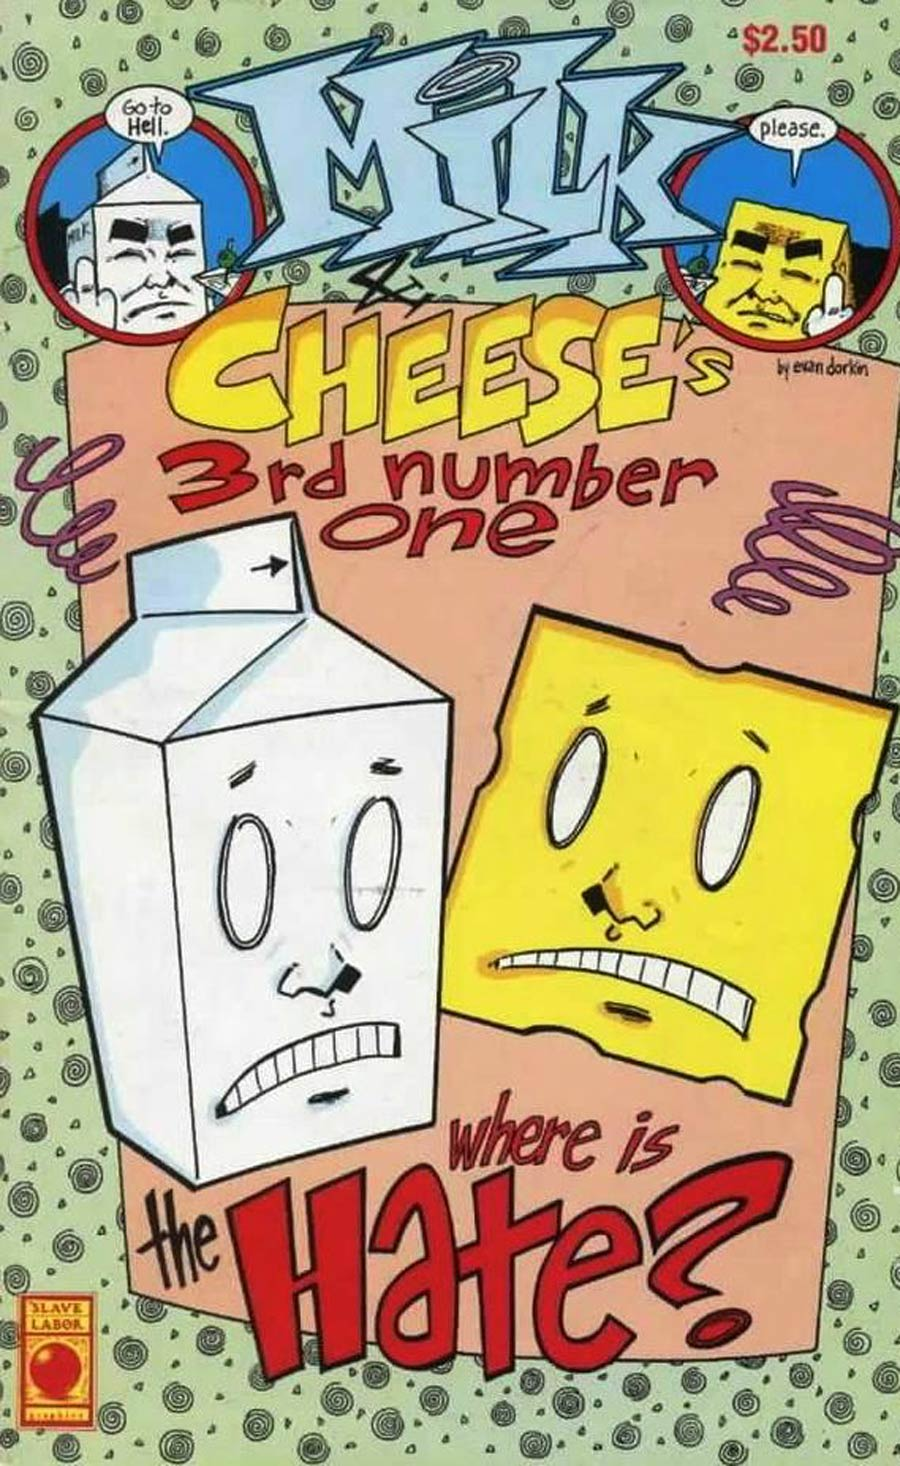 Milk And Cheese #3 (3rd Number One) Cover A 1st Ptg